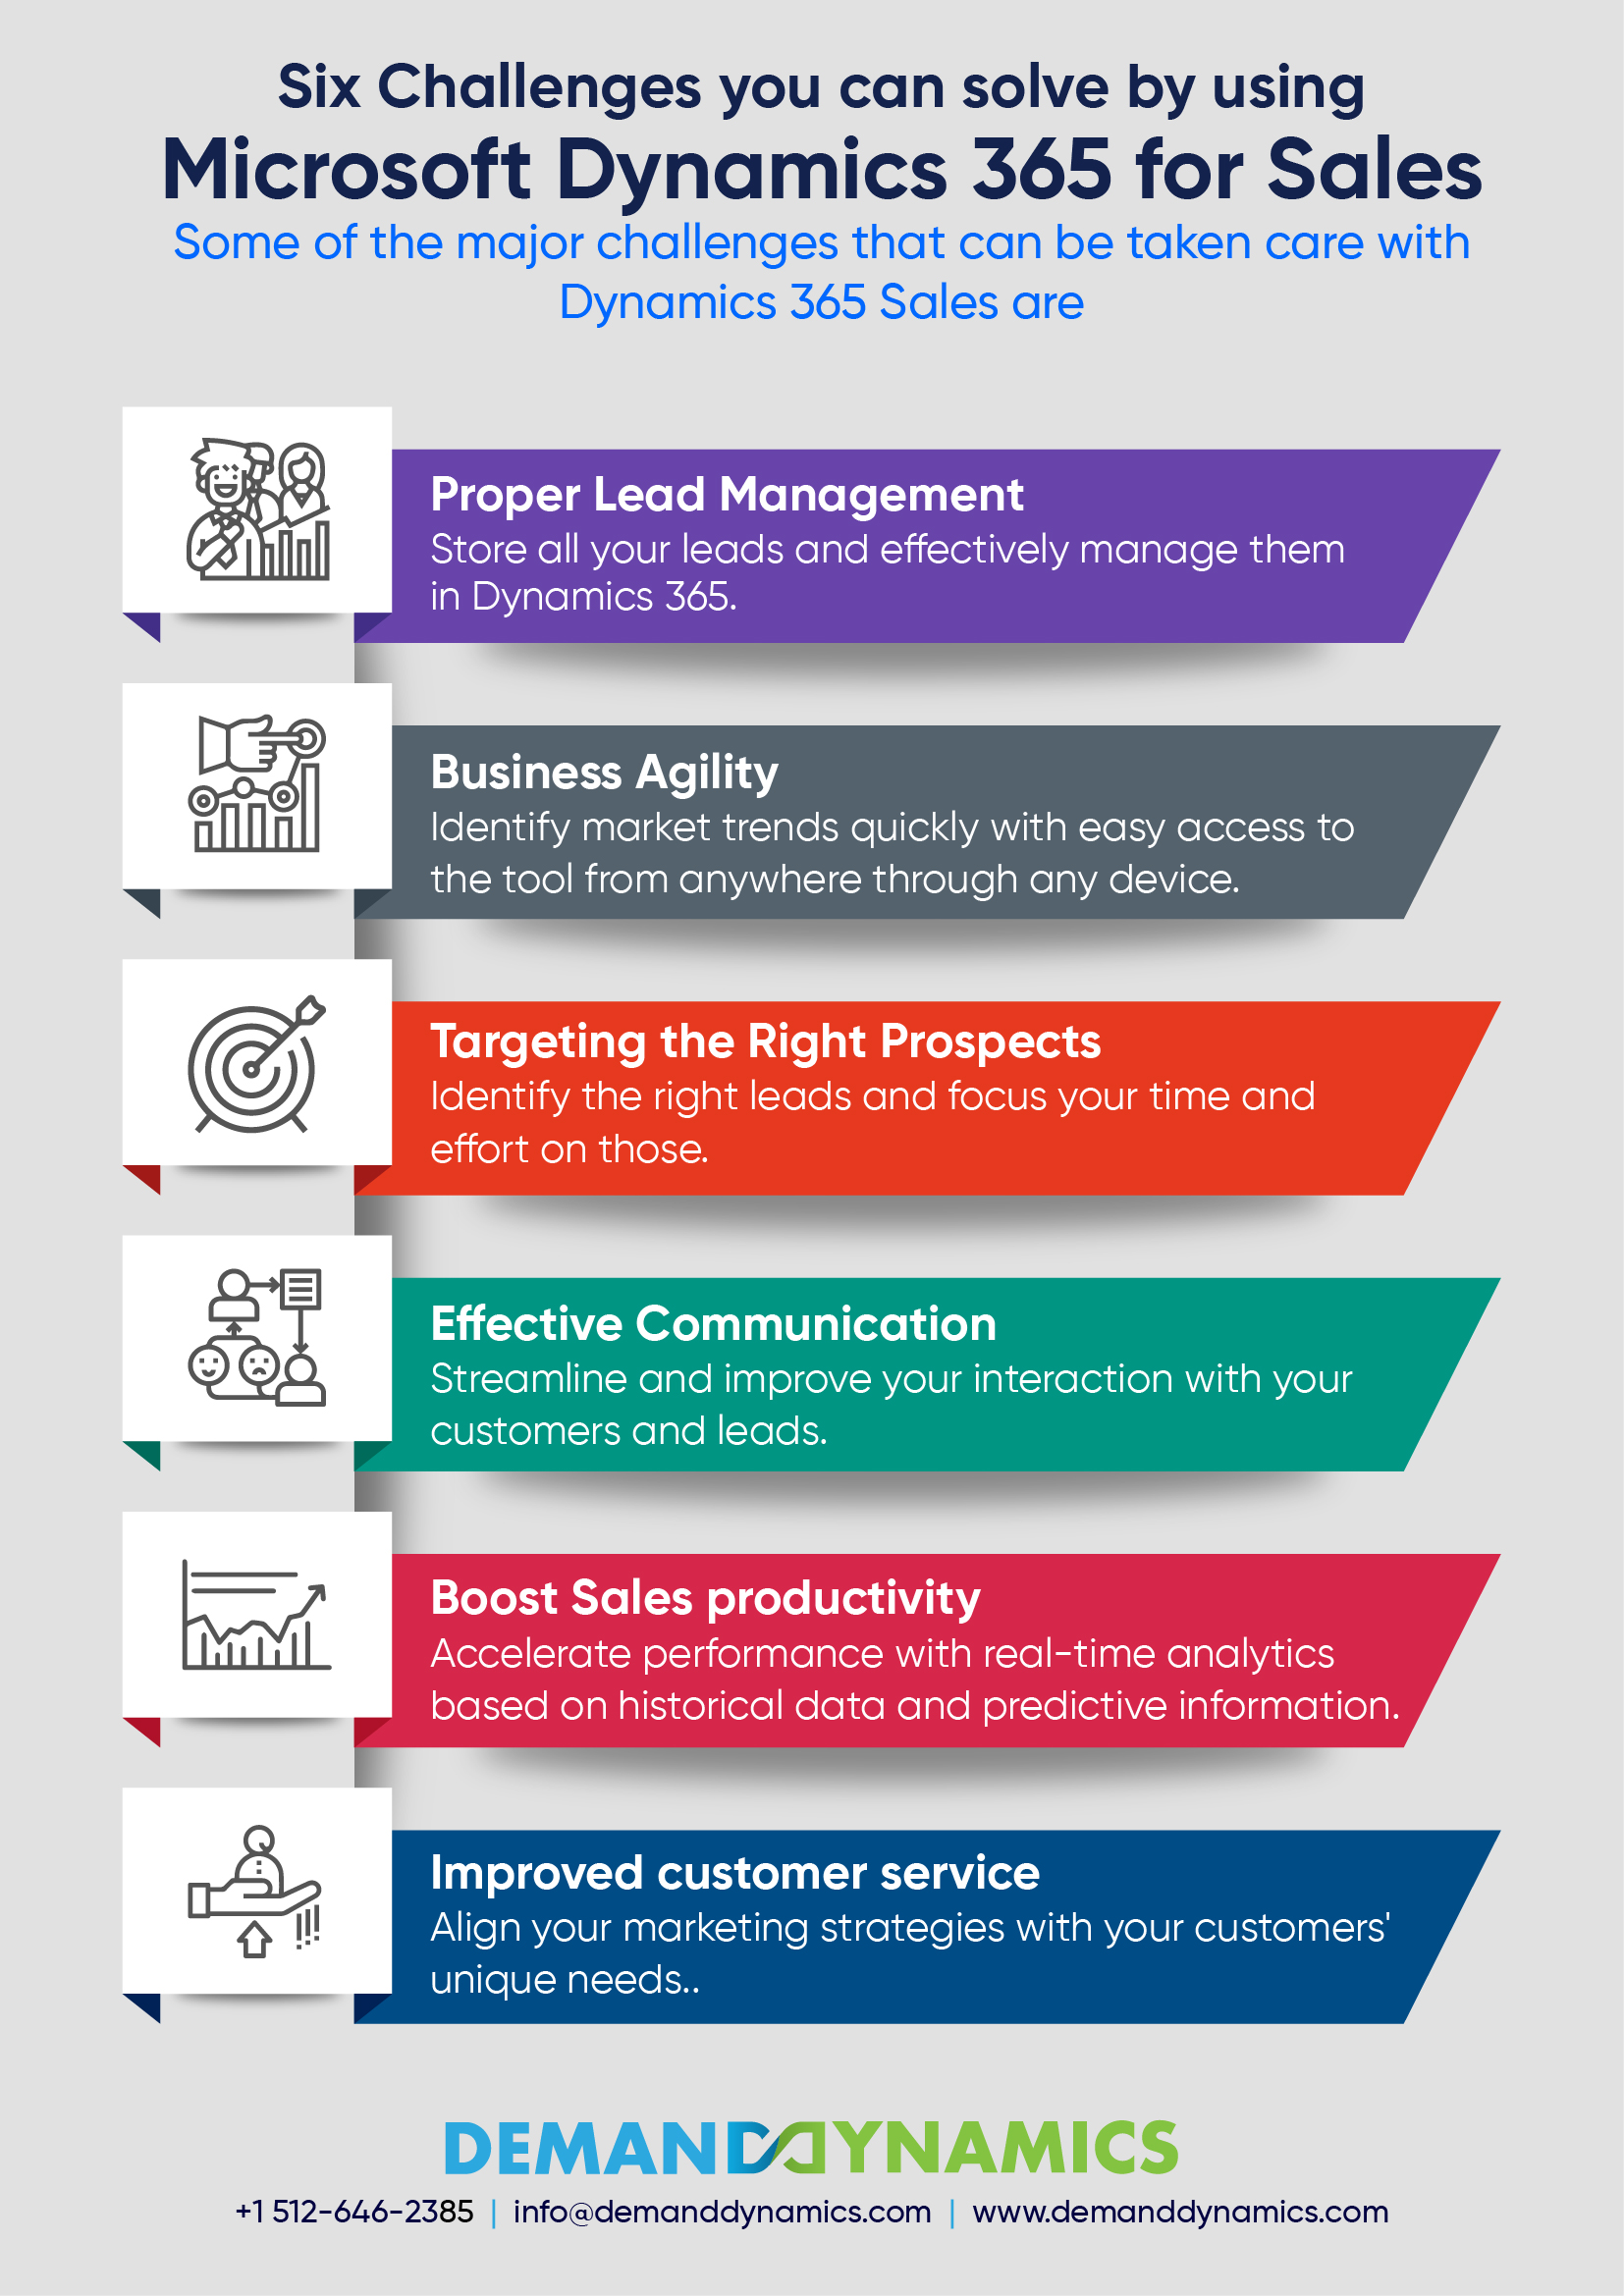 Challenges for Microsoft Dynamics 365 for Sales